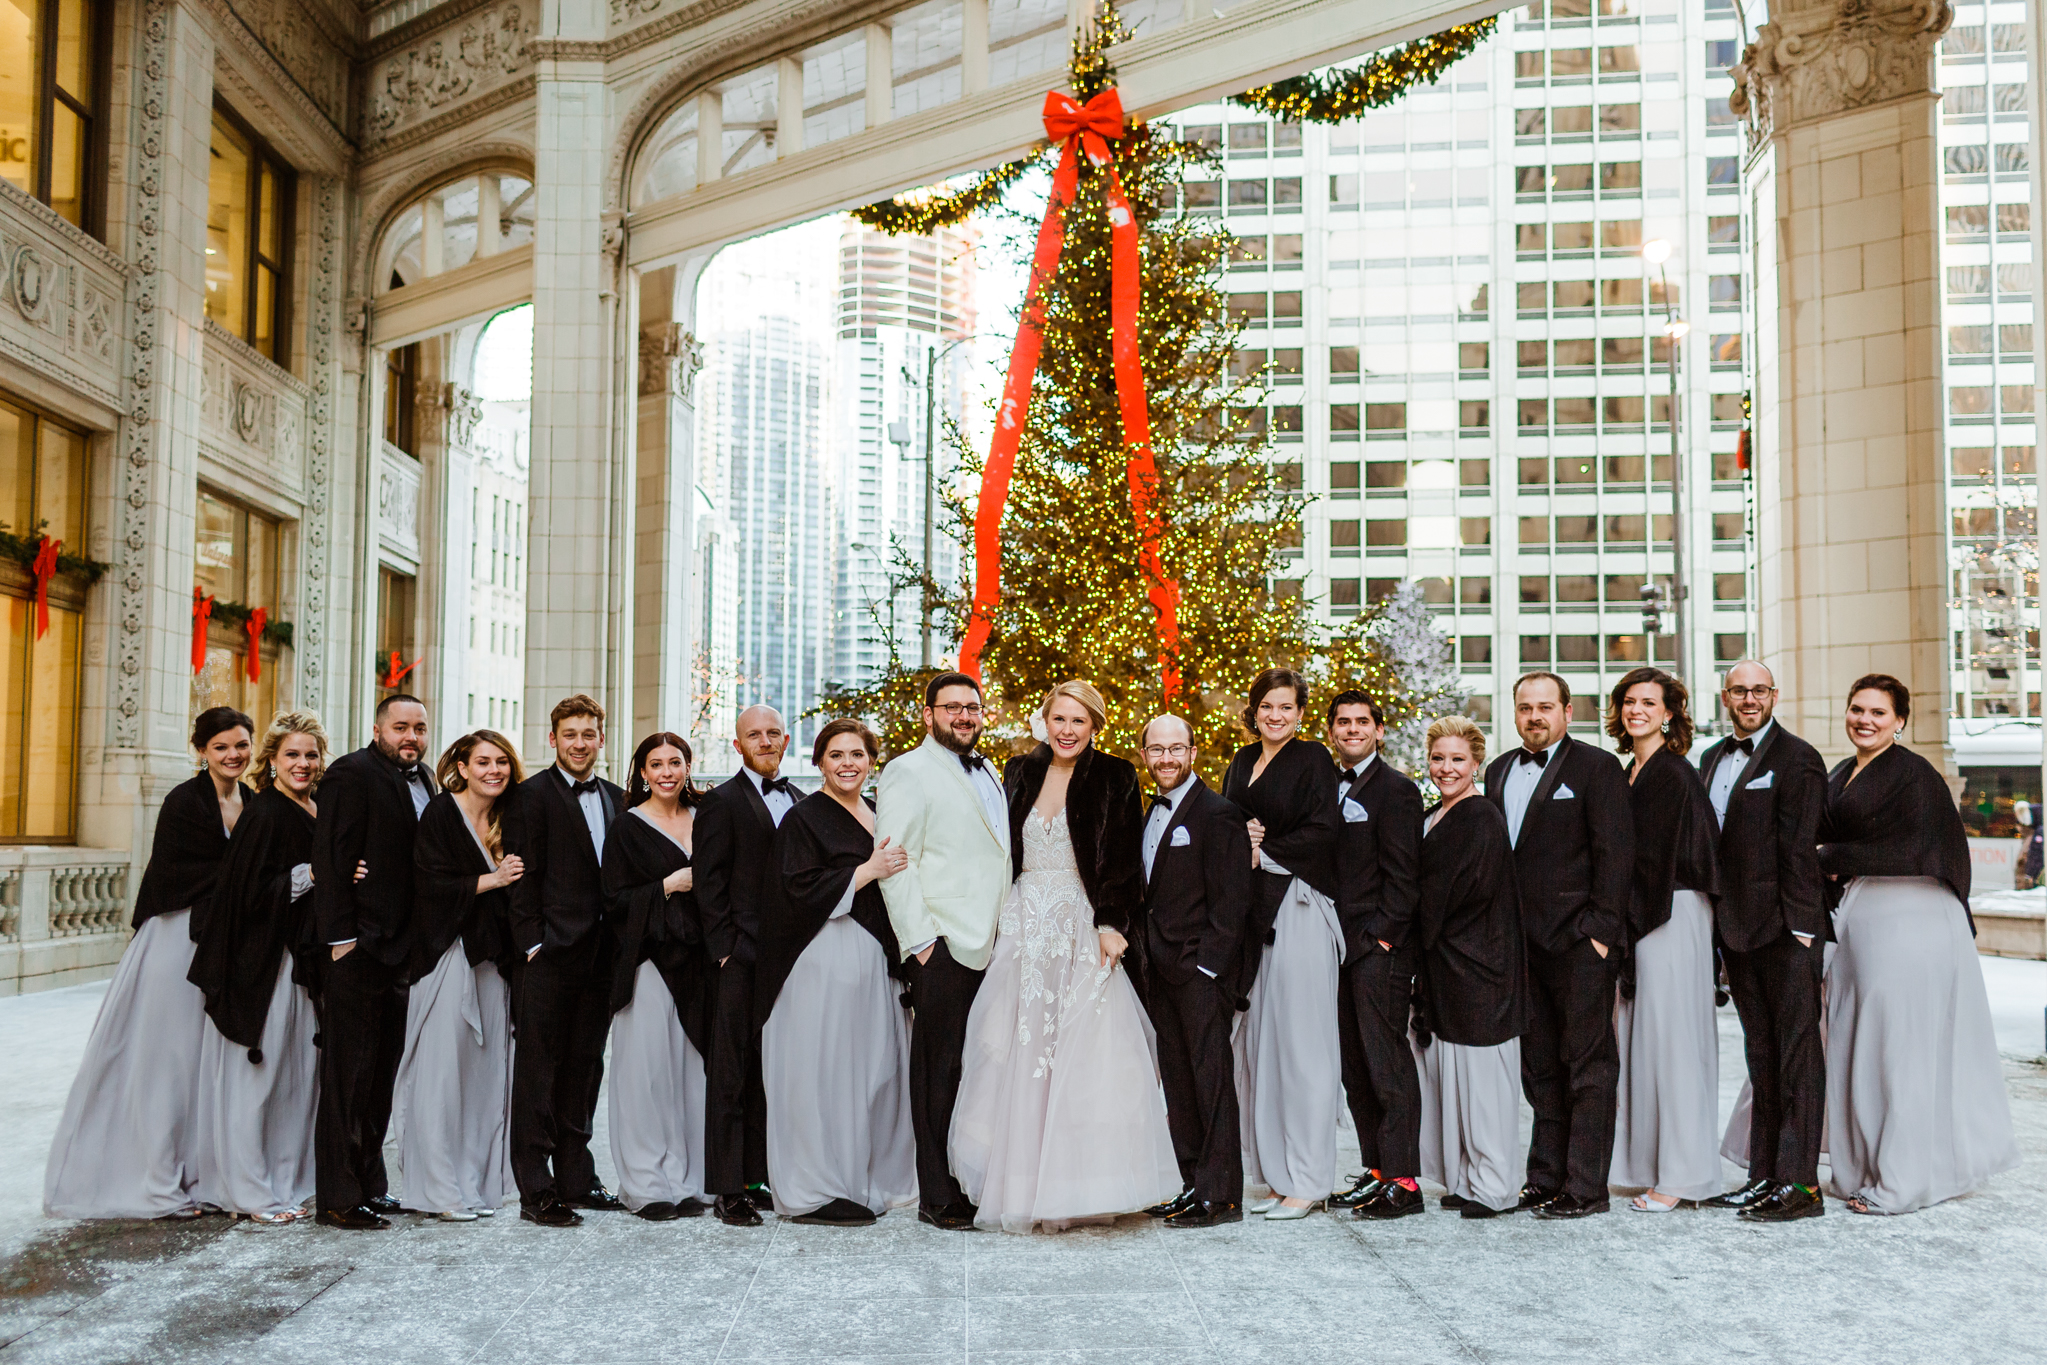 Bridal party in front of Christmas tree in downtown Chicago